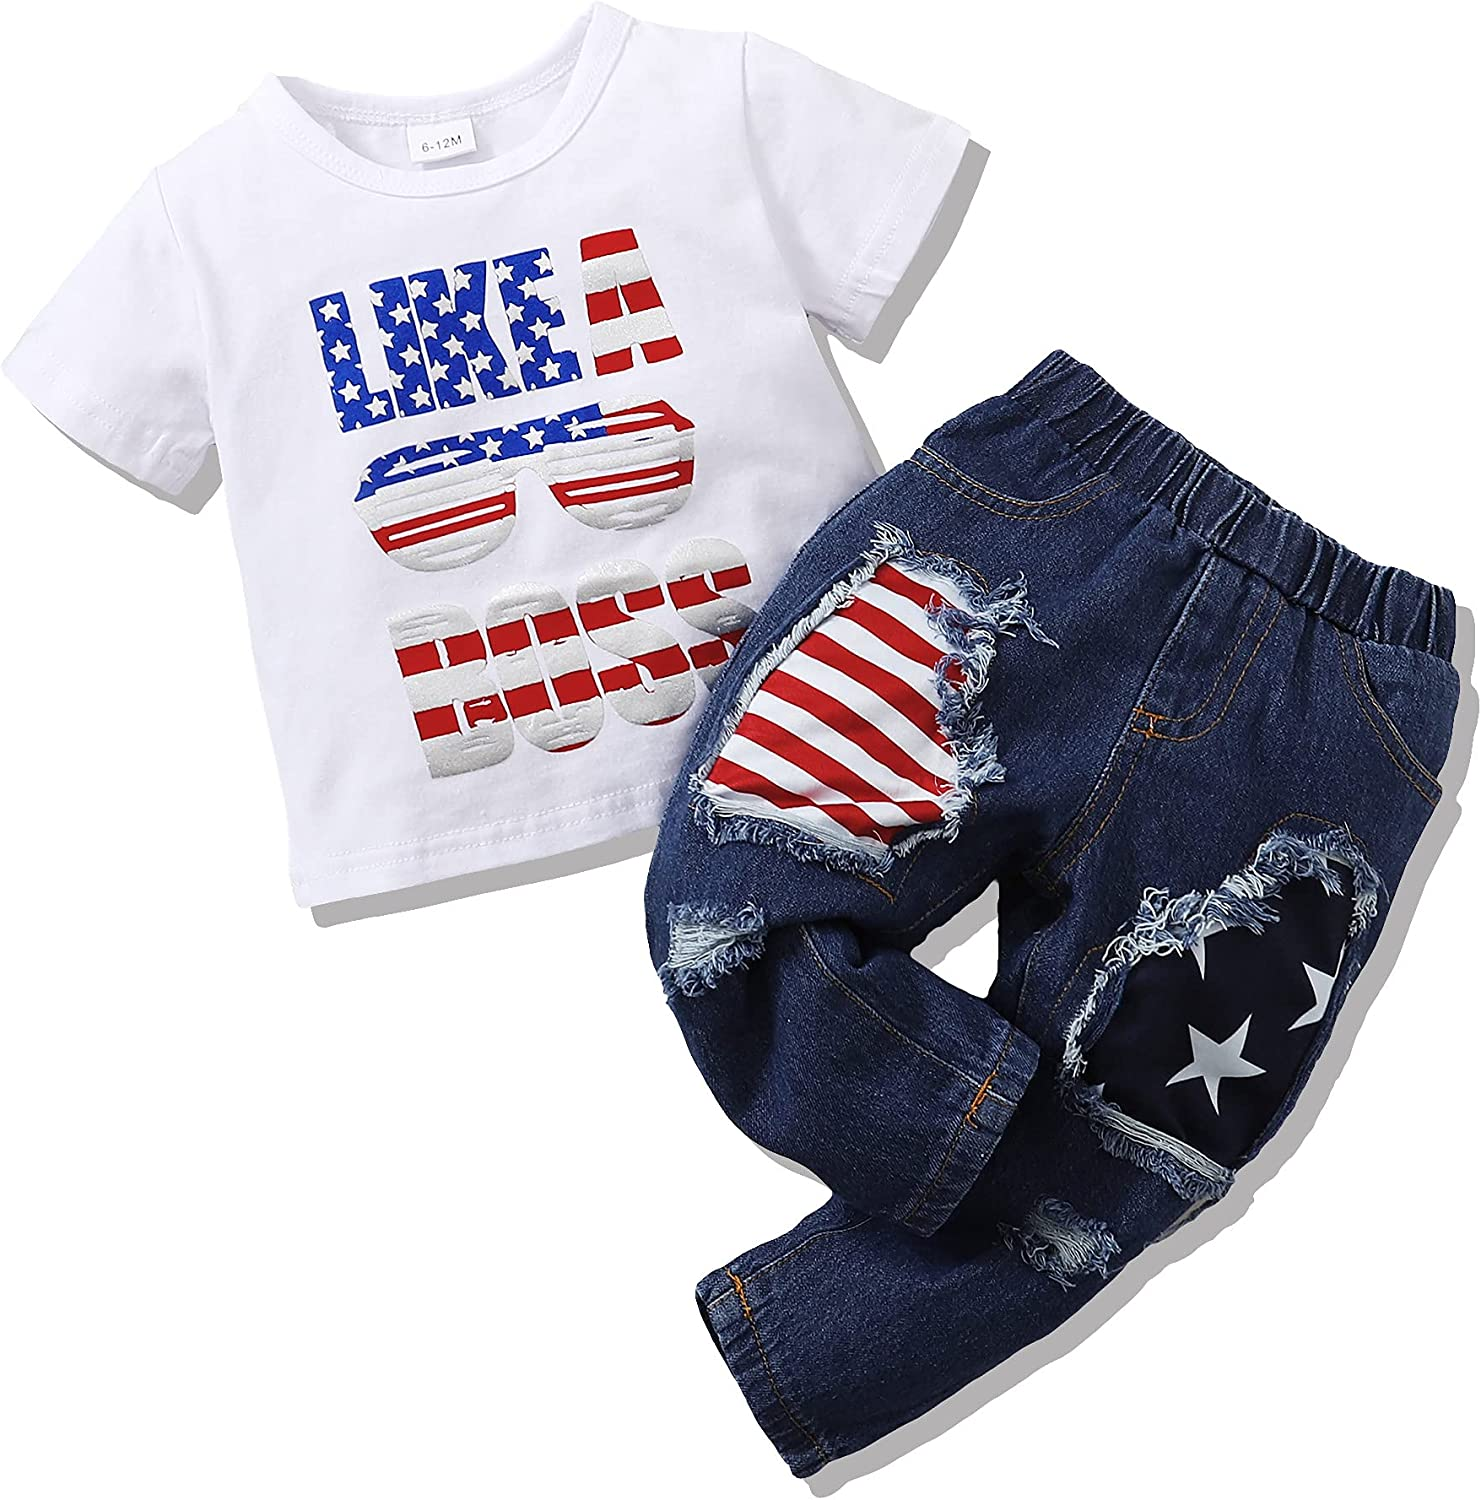 Toddler Boy Clothes 18-24 Months 4th of July Boy Outfits Short Sleeve T-Shirt Top with American Flag Ripped Jeans 2PCS Summer Clothing Set White